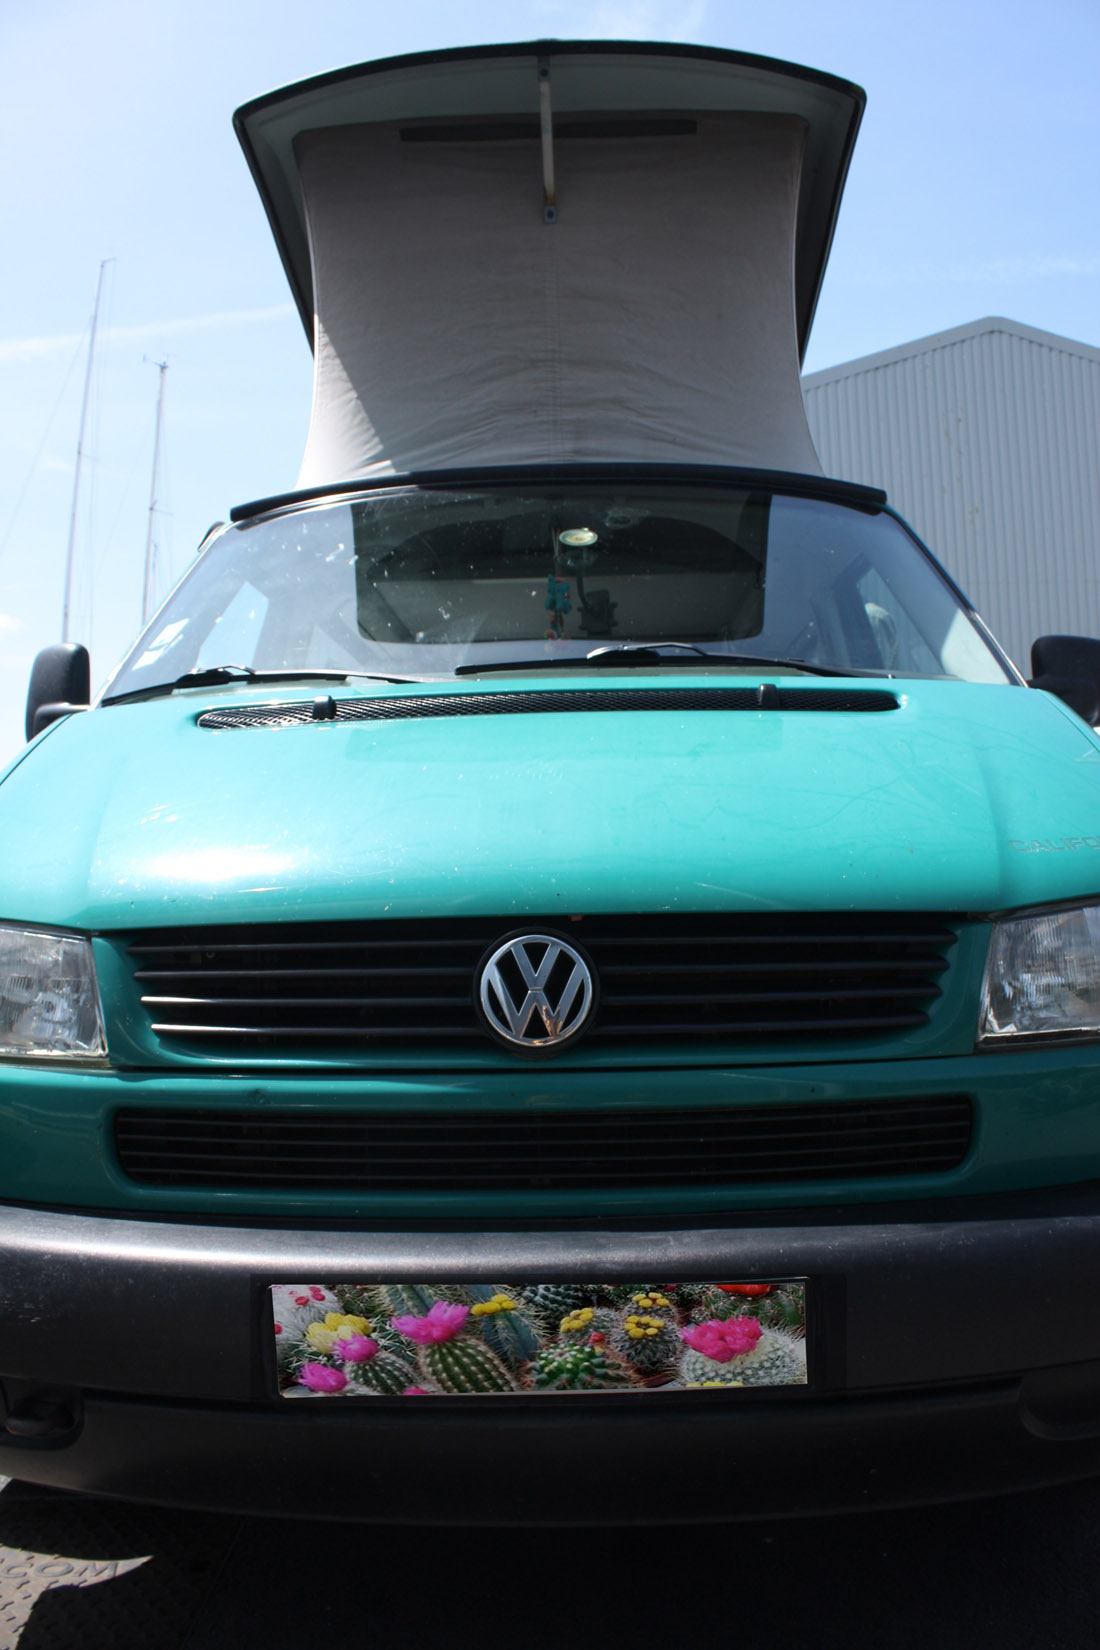 Img furthermore Maxresdefault furthermore T Life in addition Le Van moreover Img X. on vw transporter camper van